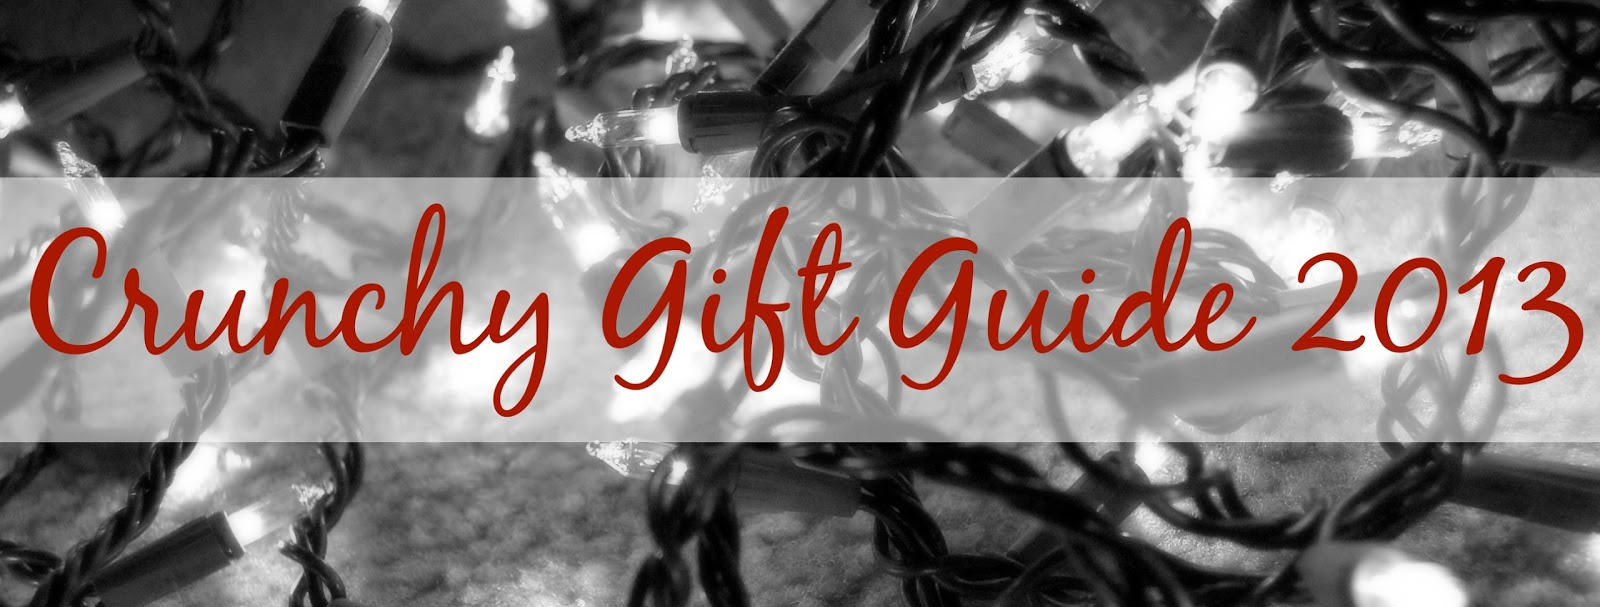 Crunchy Gift Guide 2013 - Kids